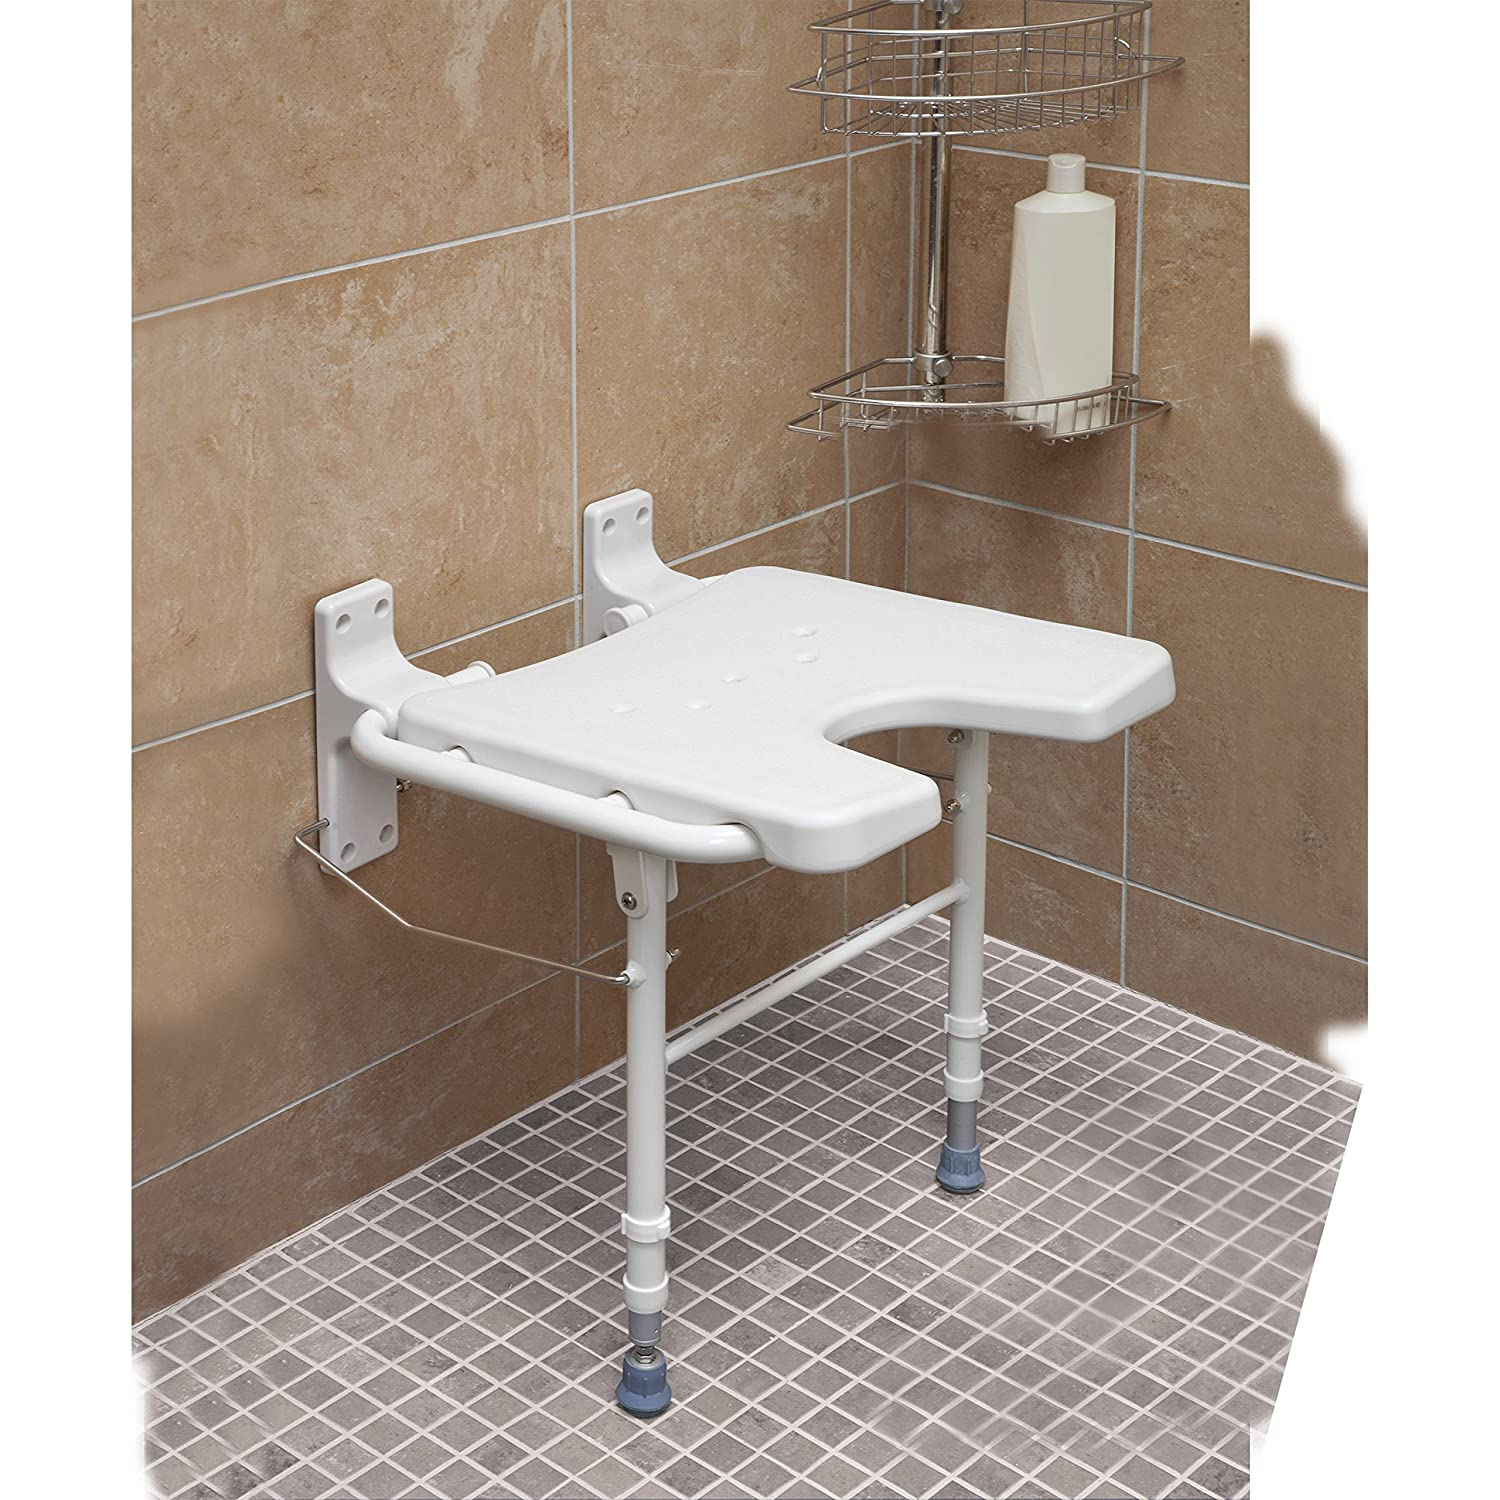 HealthSmart Wall Mount Fold Away Bath Chair Shower Seat Bench with ...